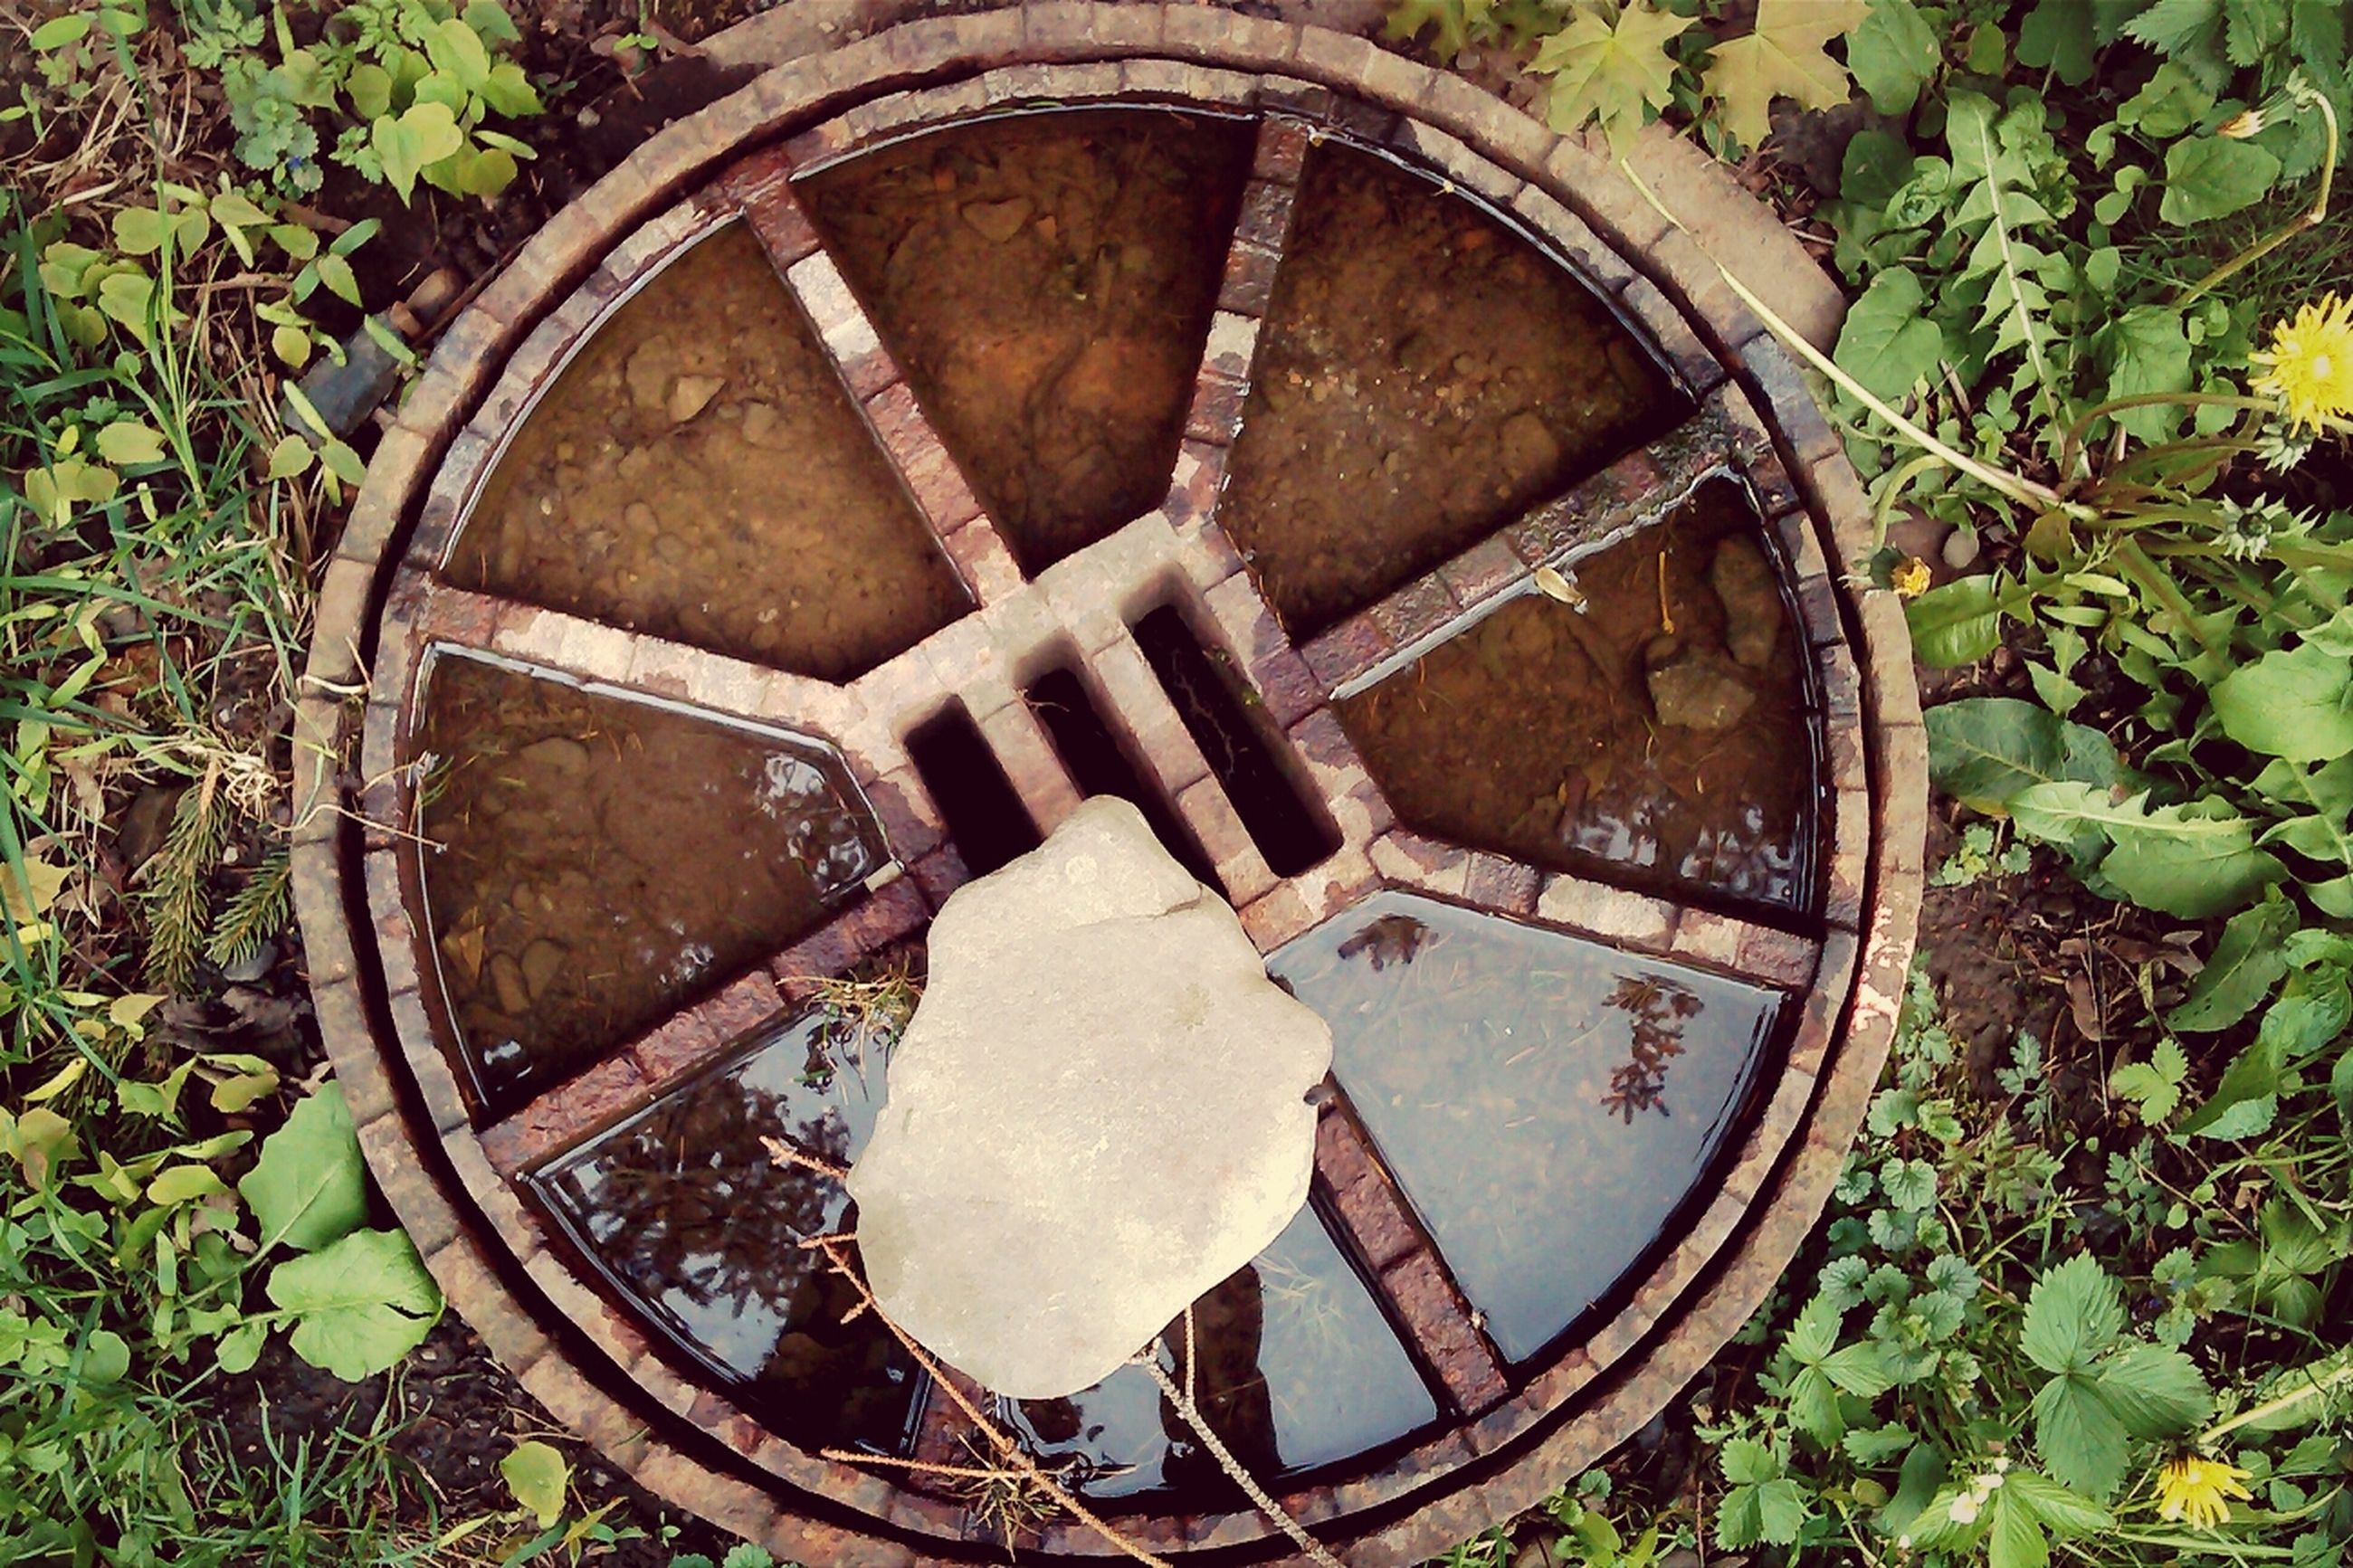 abandoned, circle, old, grass, obsolete, high angle view, plant, damaged, rusty, deterioration, leaf, geometric shape, metal, run-down, wheel, day, field, directly above, outdoors, weathered